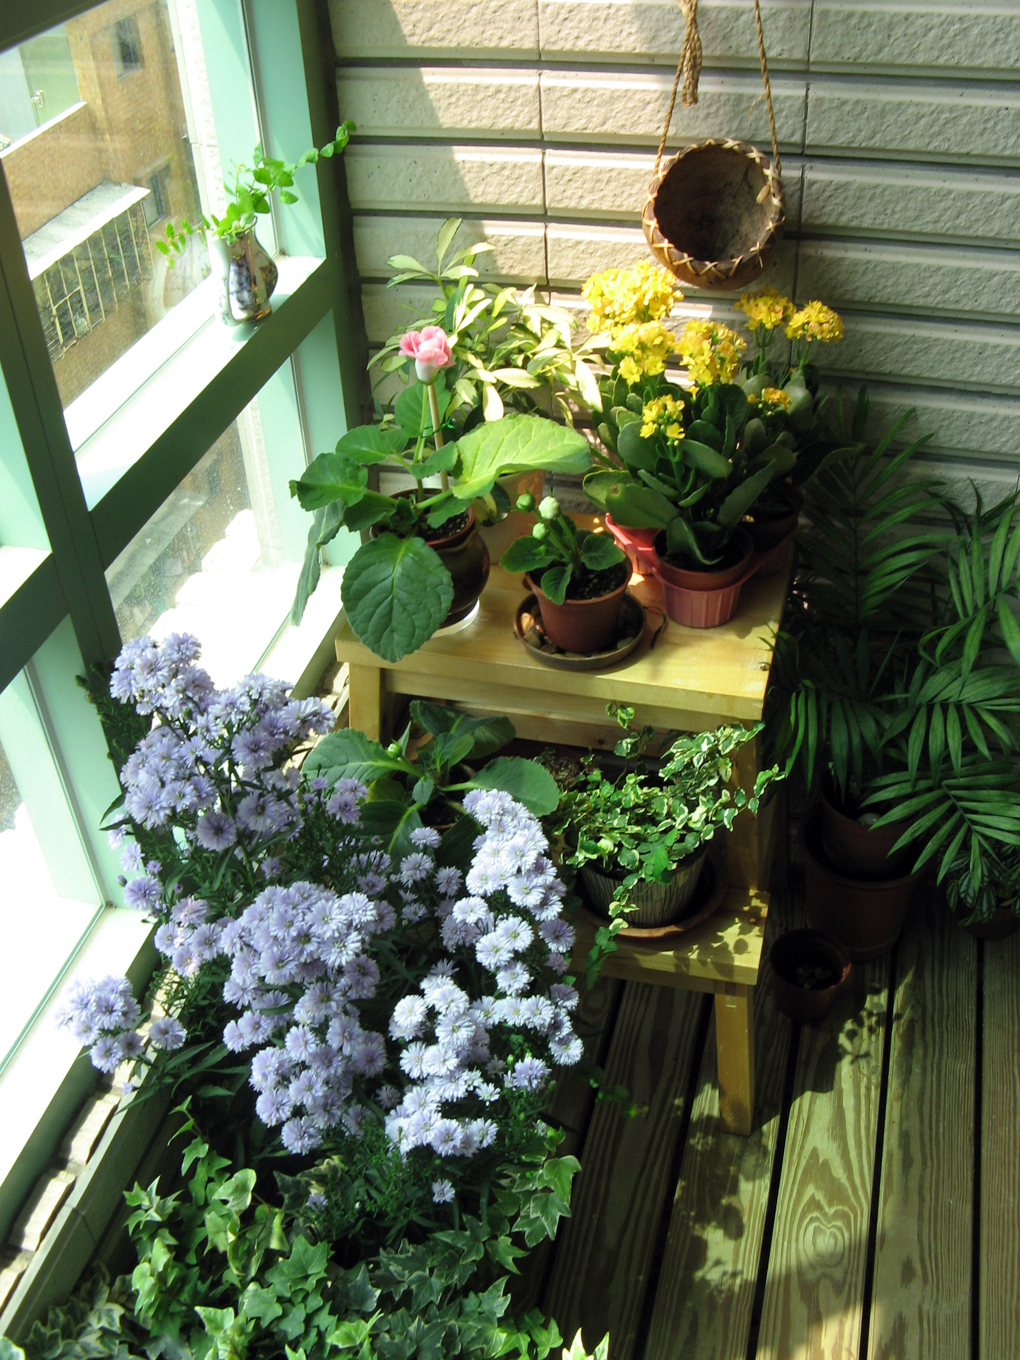 5 indoor garden ideas perfect for tiny spaces for Garden design reddit